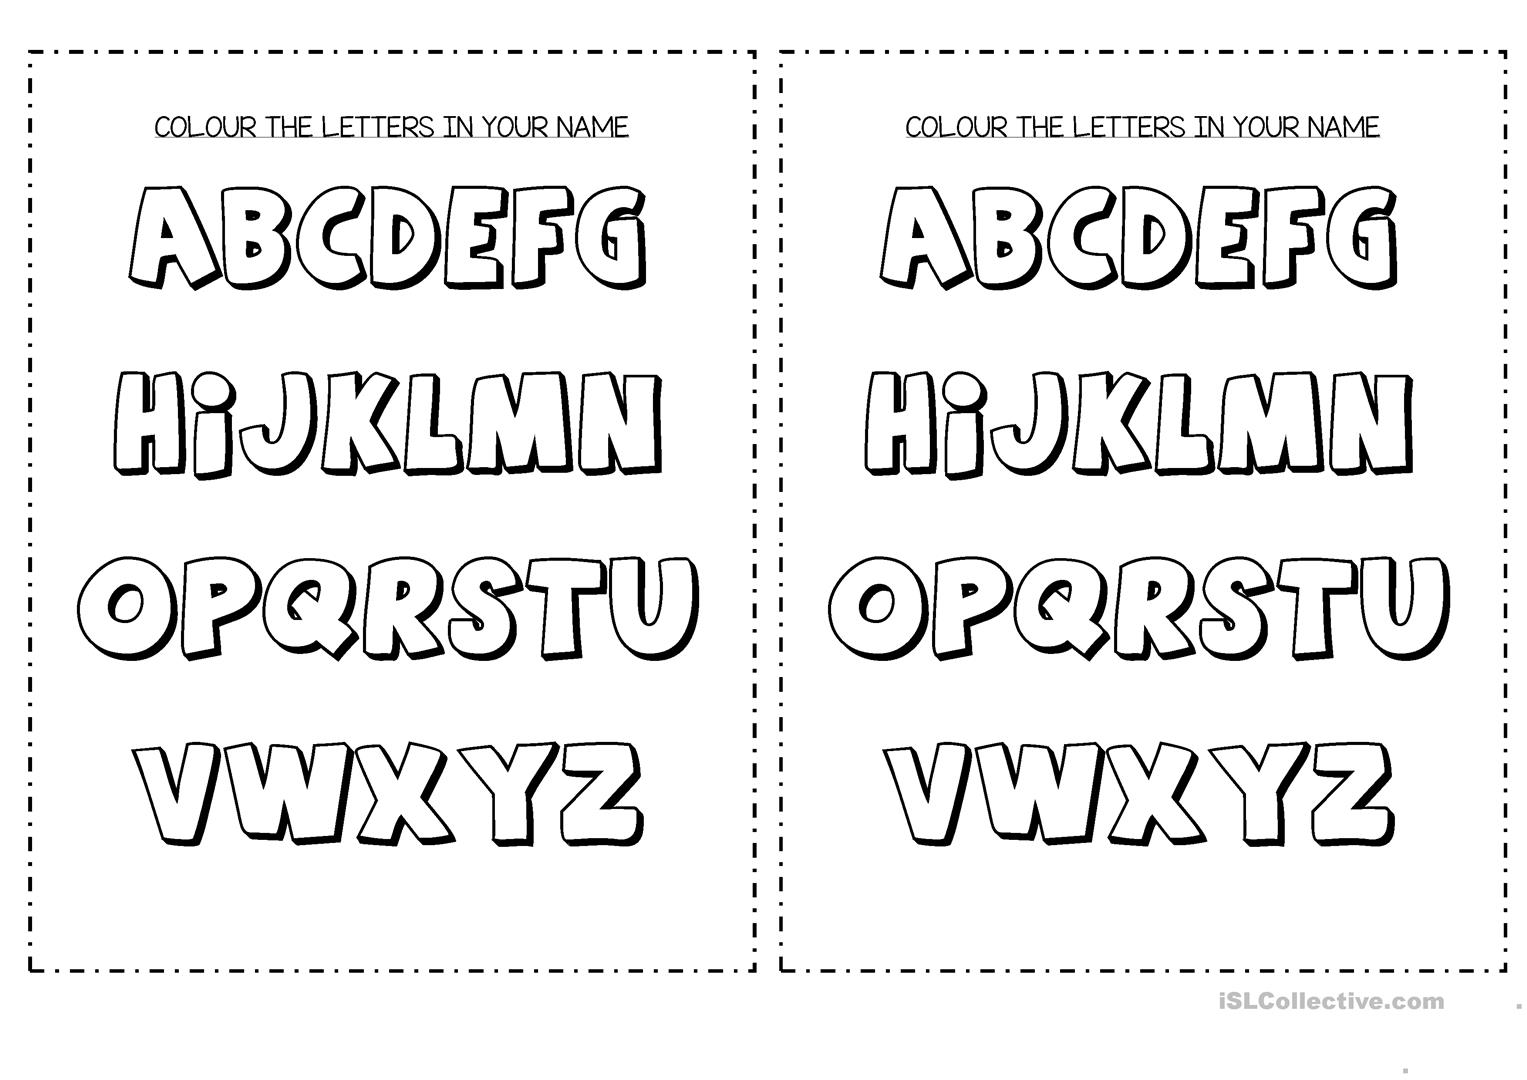 Colour The Letters In Your Name